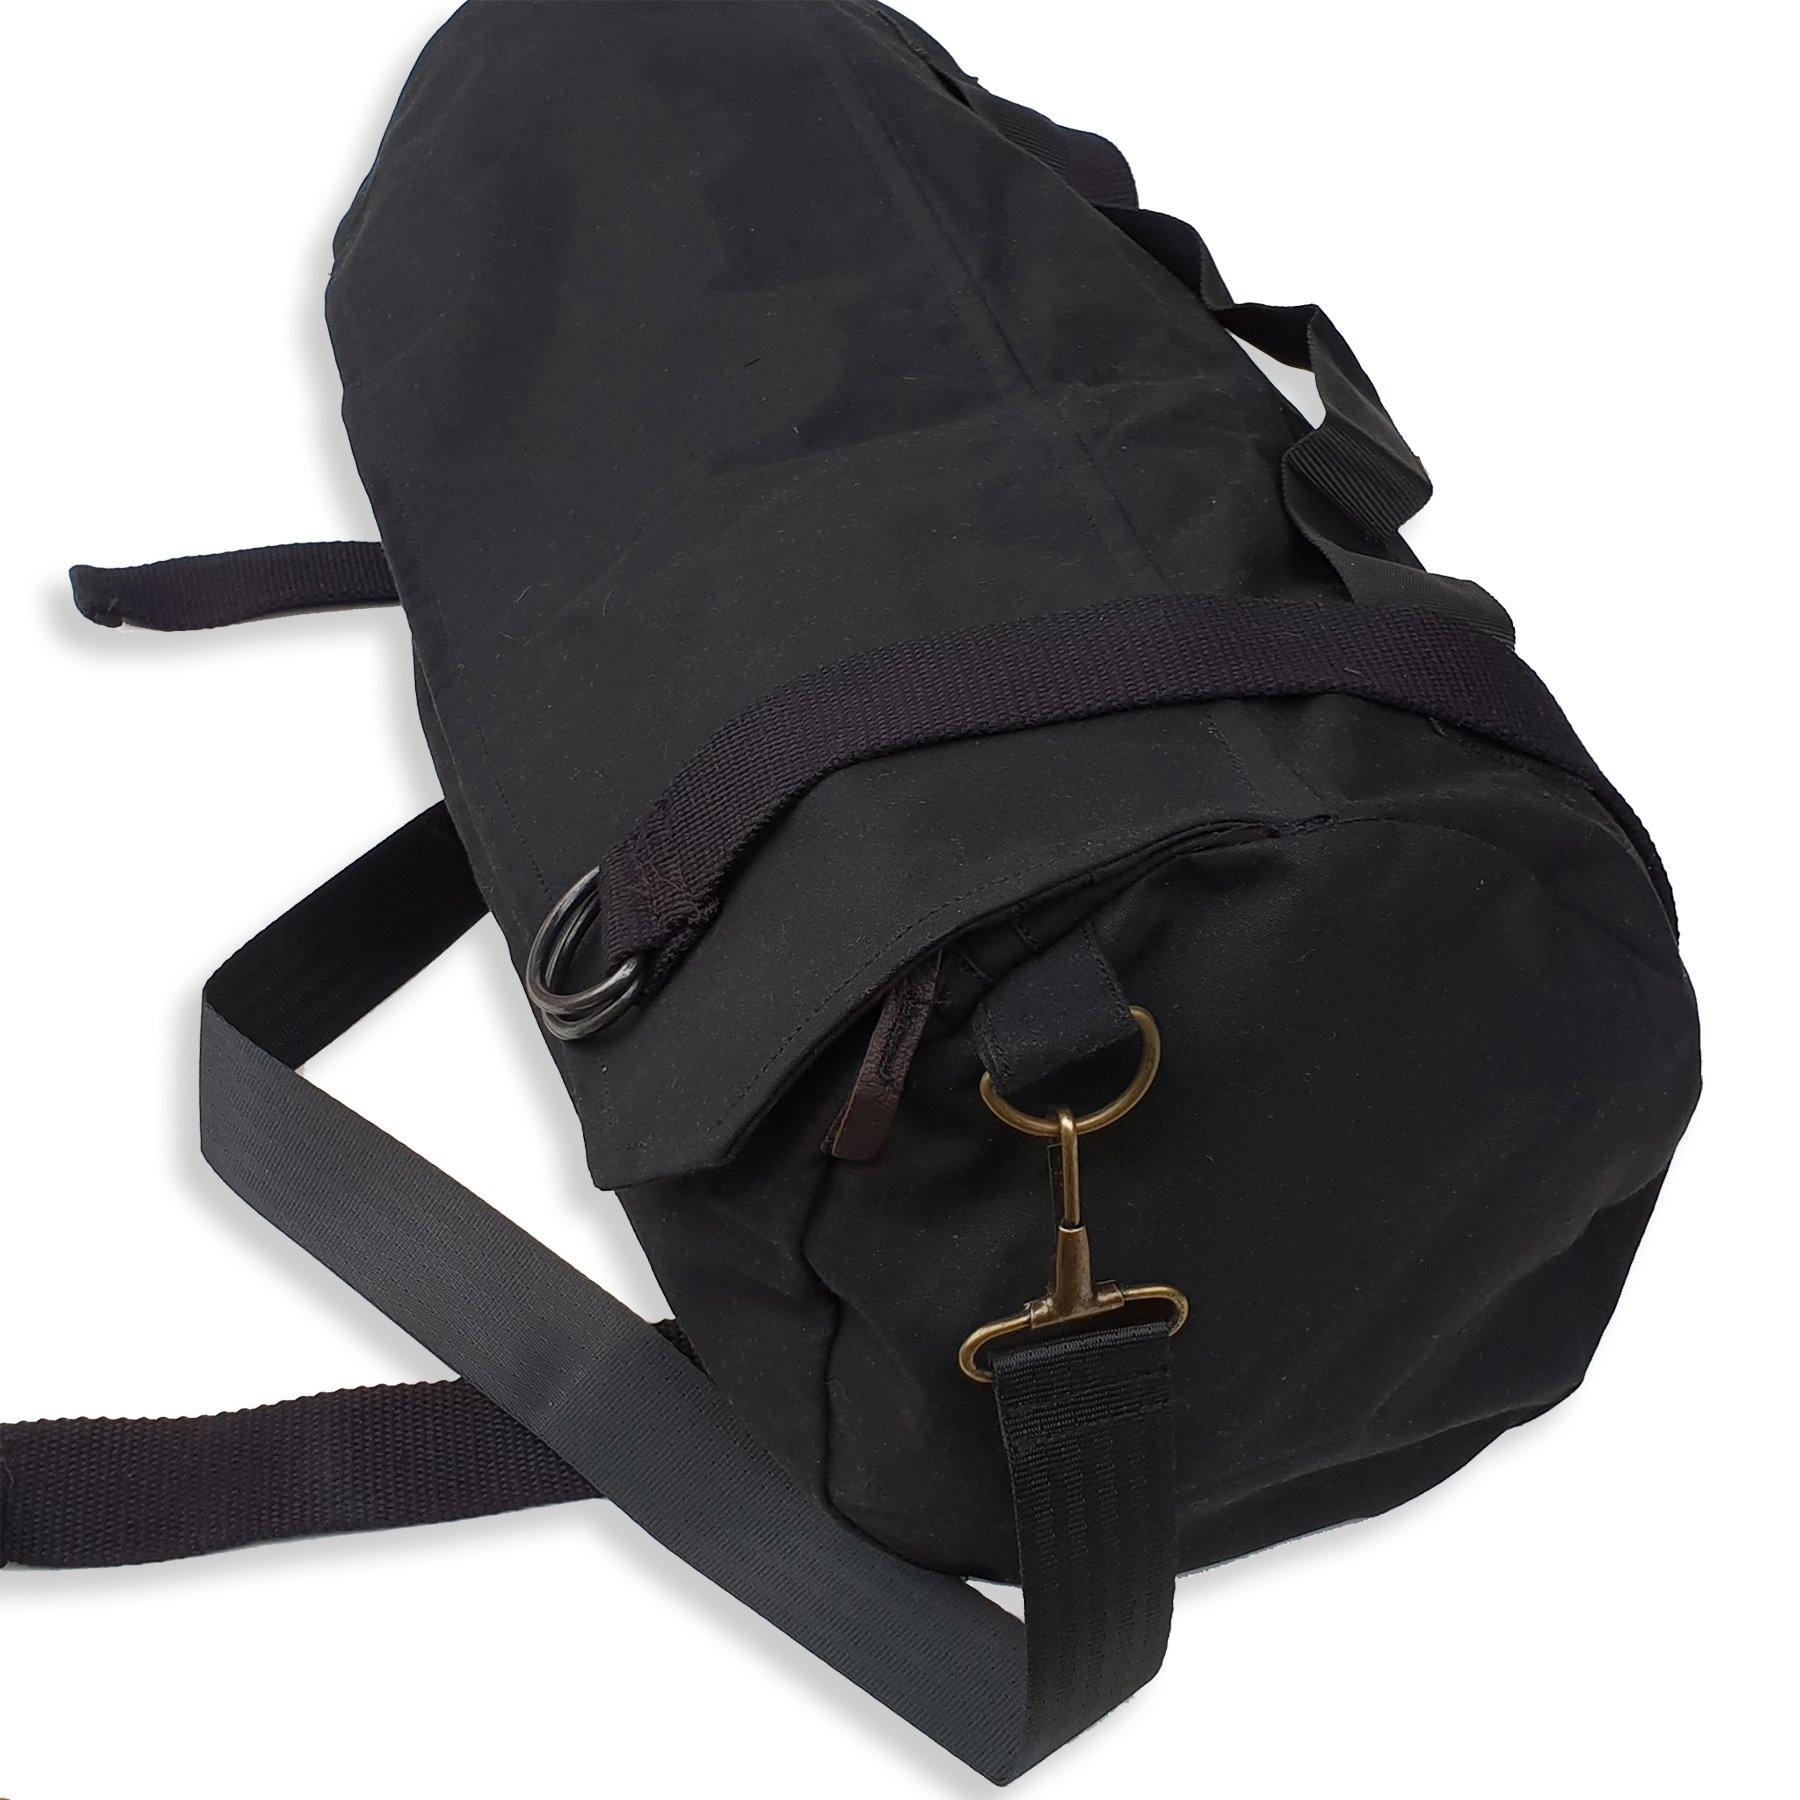 Biker's Oilskin Jacket Bag in Black - Kakadu Traders Australia